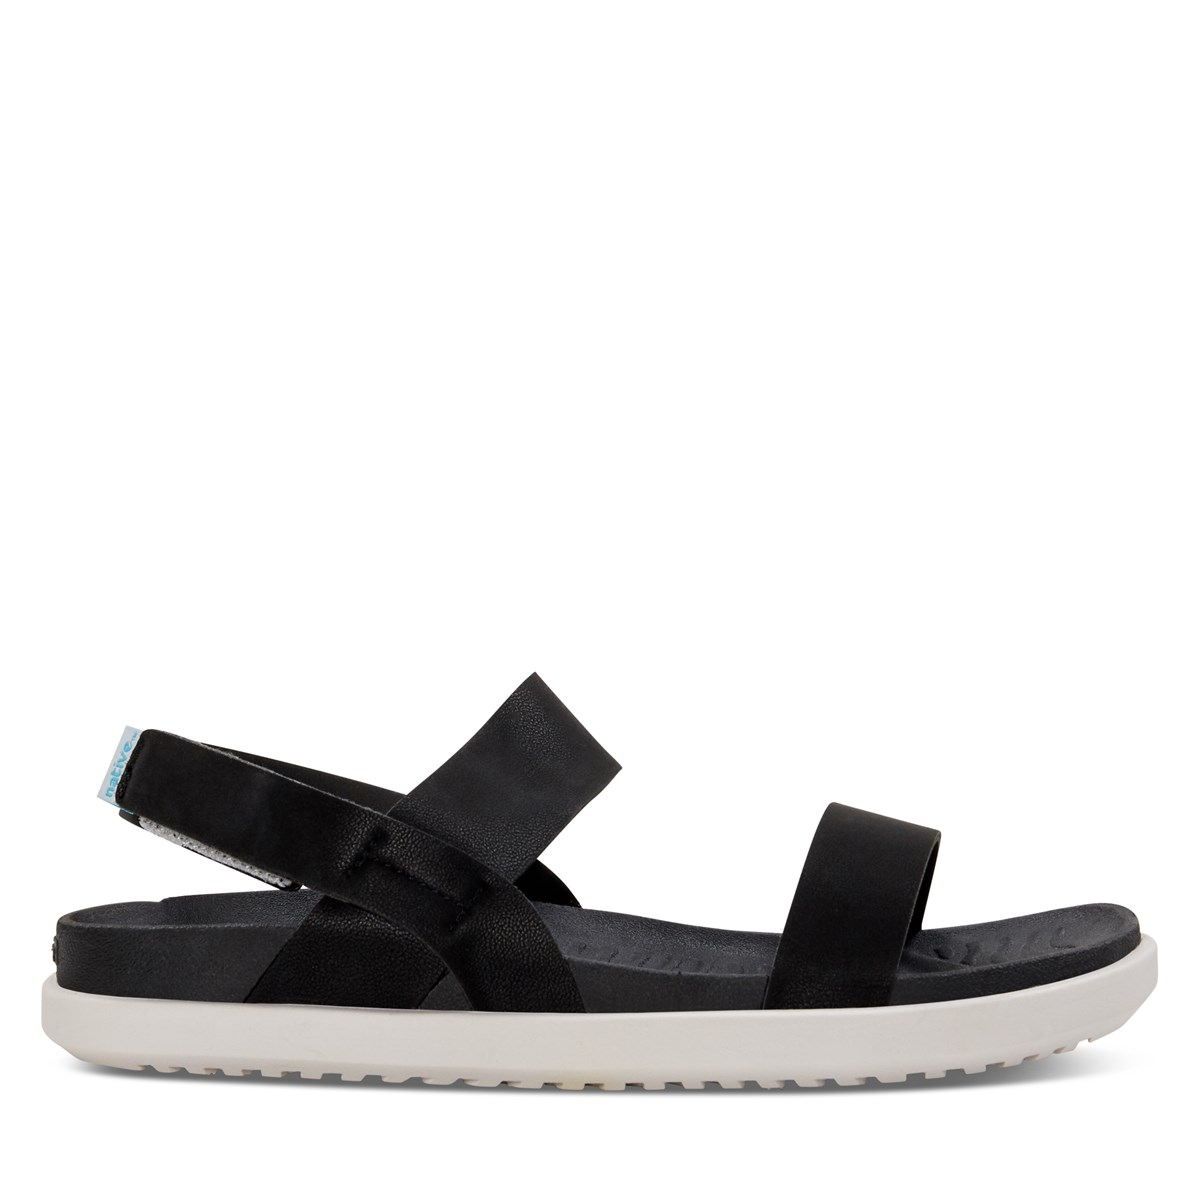 Women's Ellis Strapped Sandals in Black